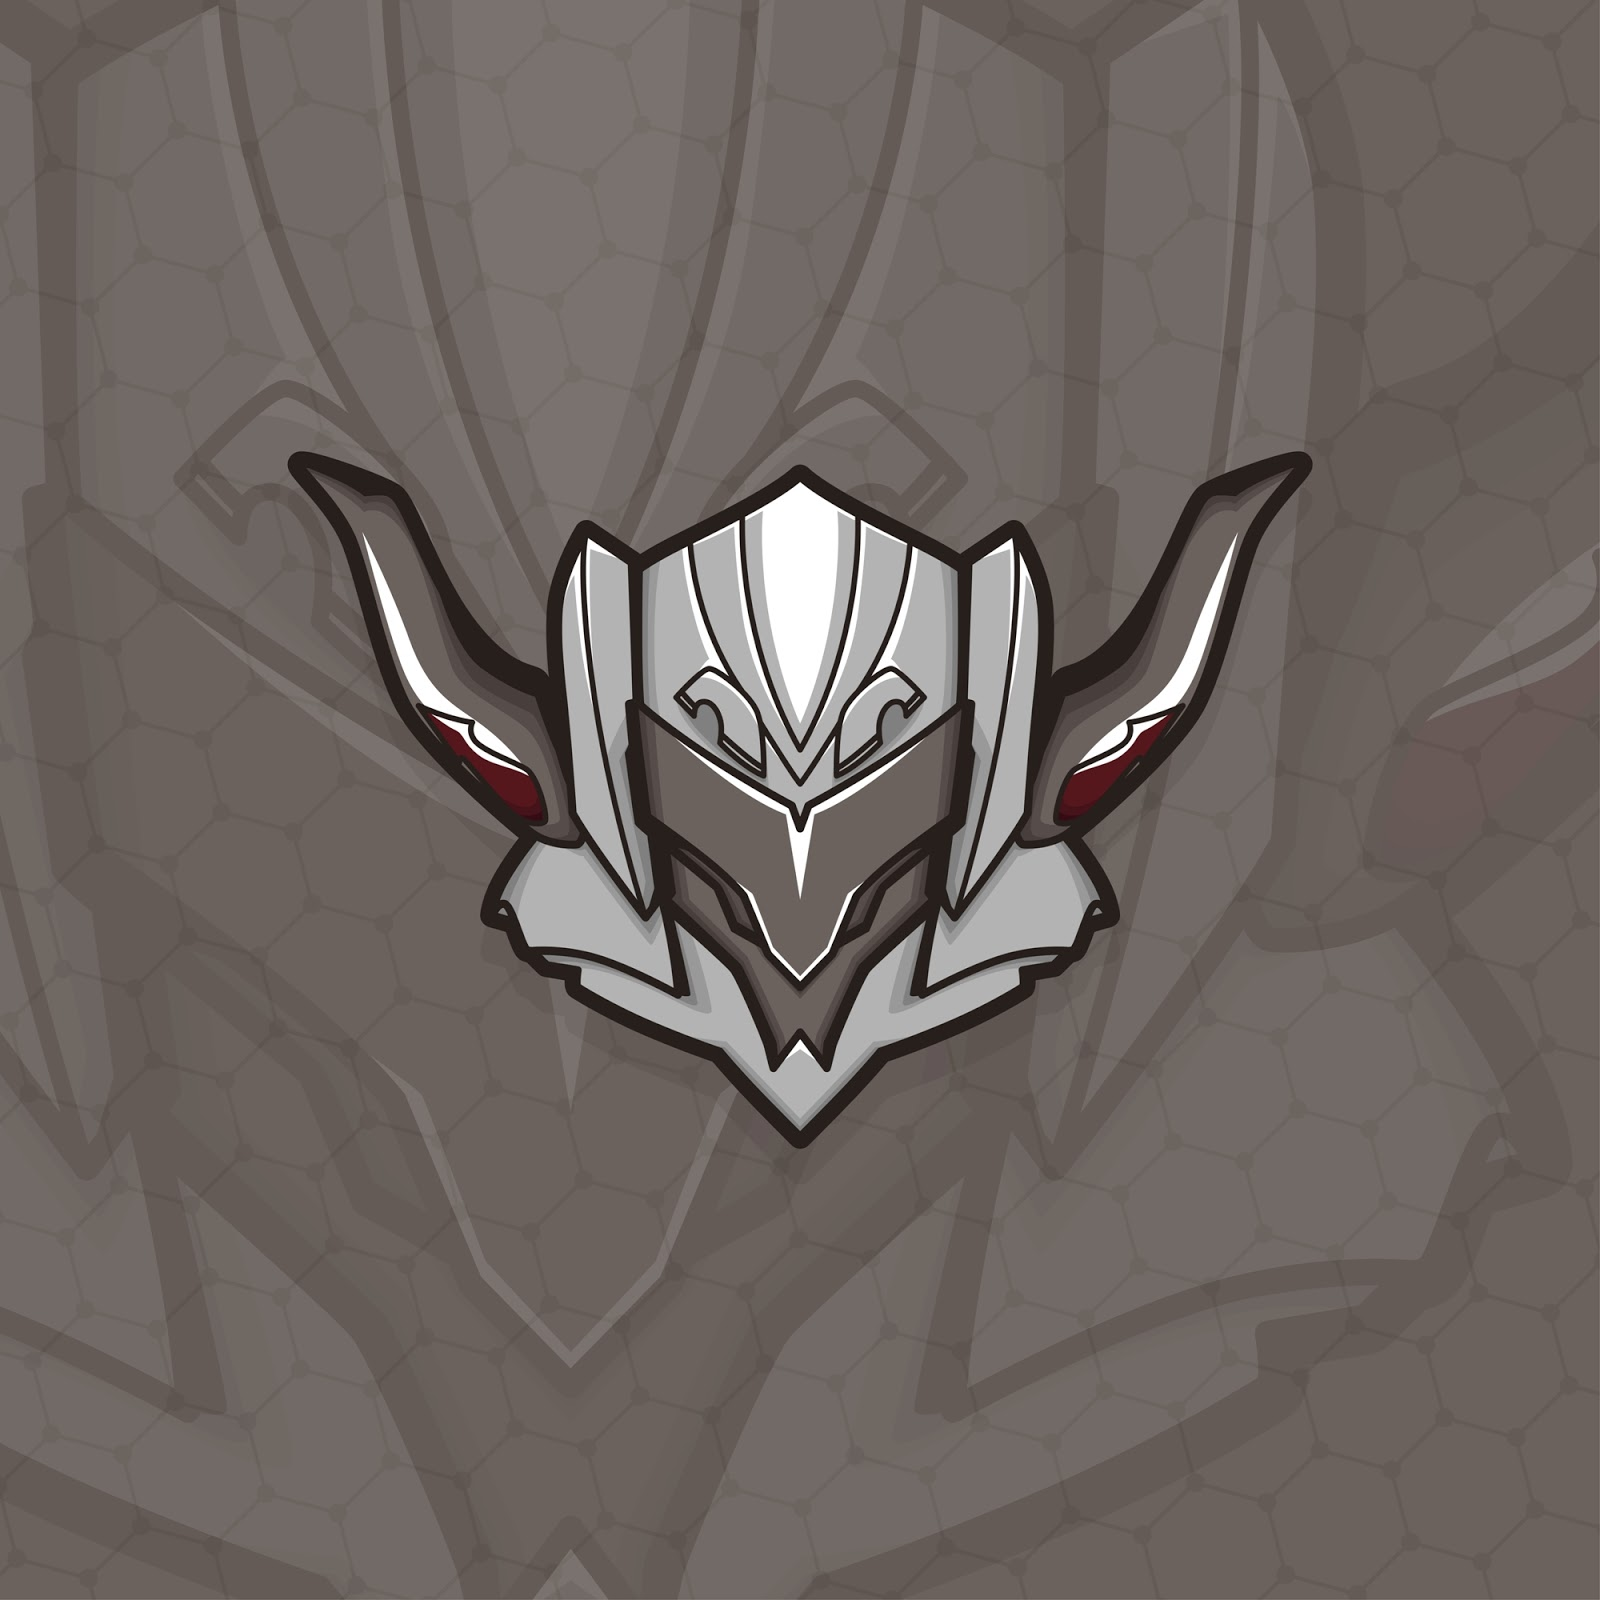 Esport Gamer Logo Saber Free Download Vector CDR, AI, EPS and PNG Formats